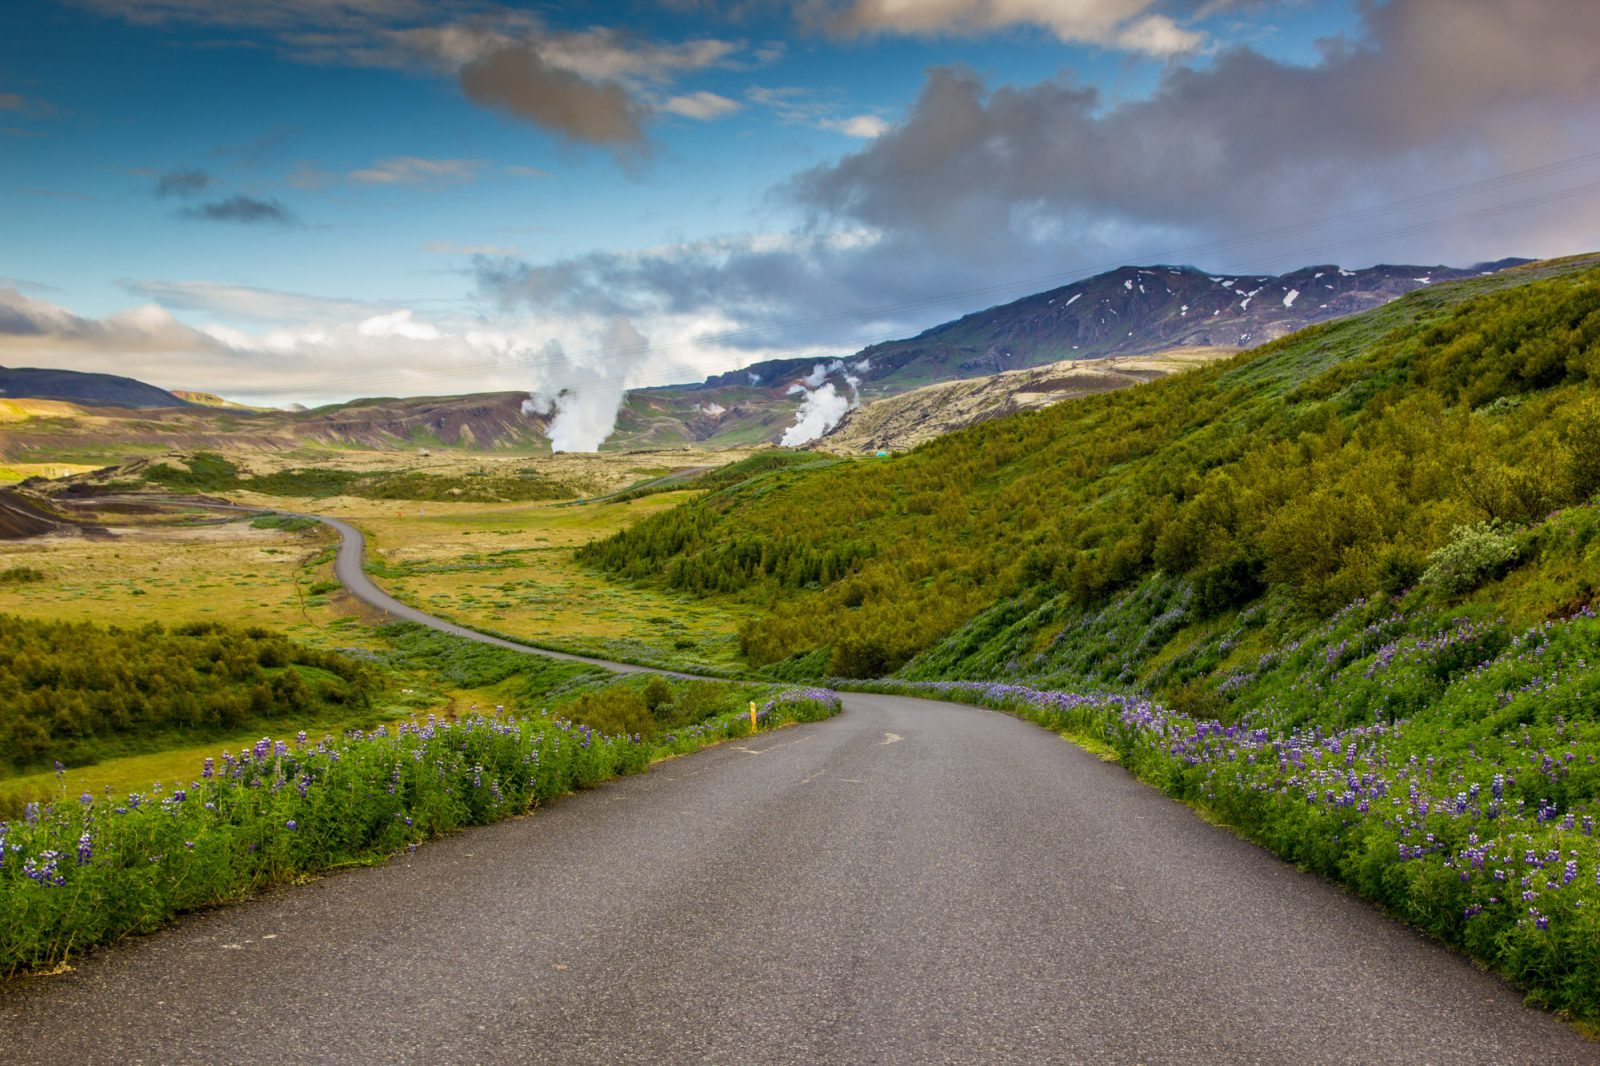 Road to Thingvellir national park Iceland